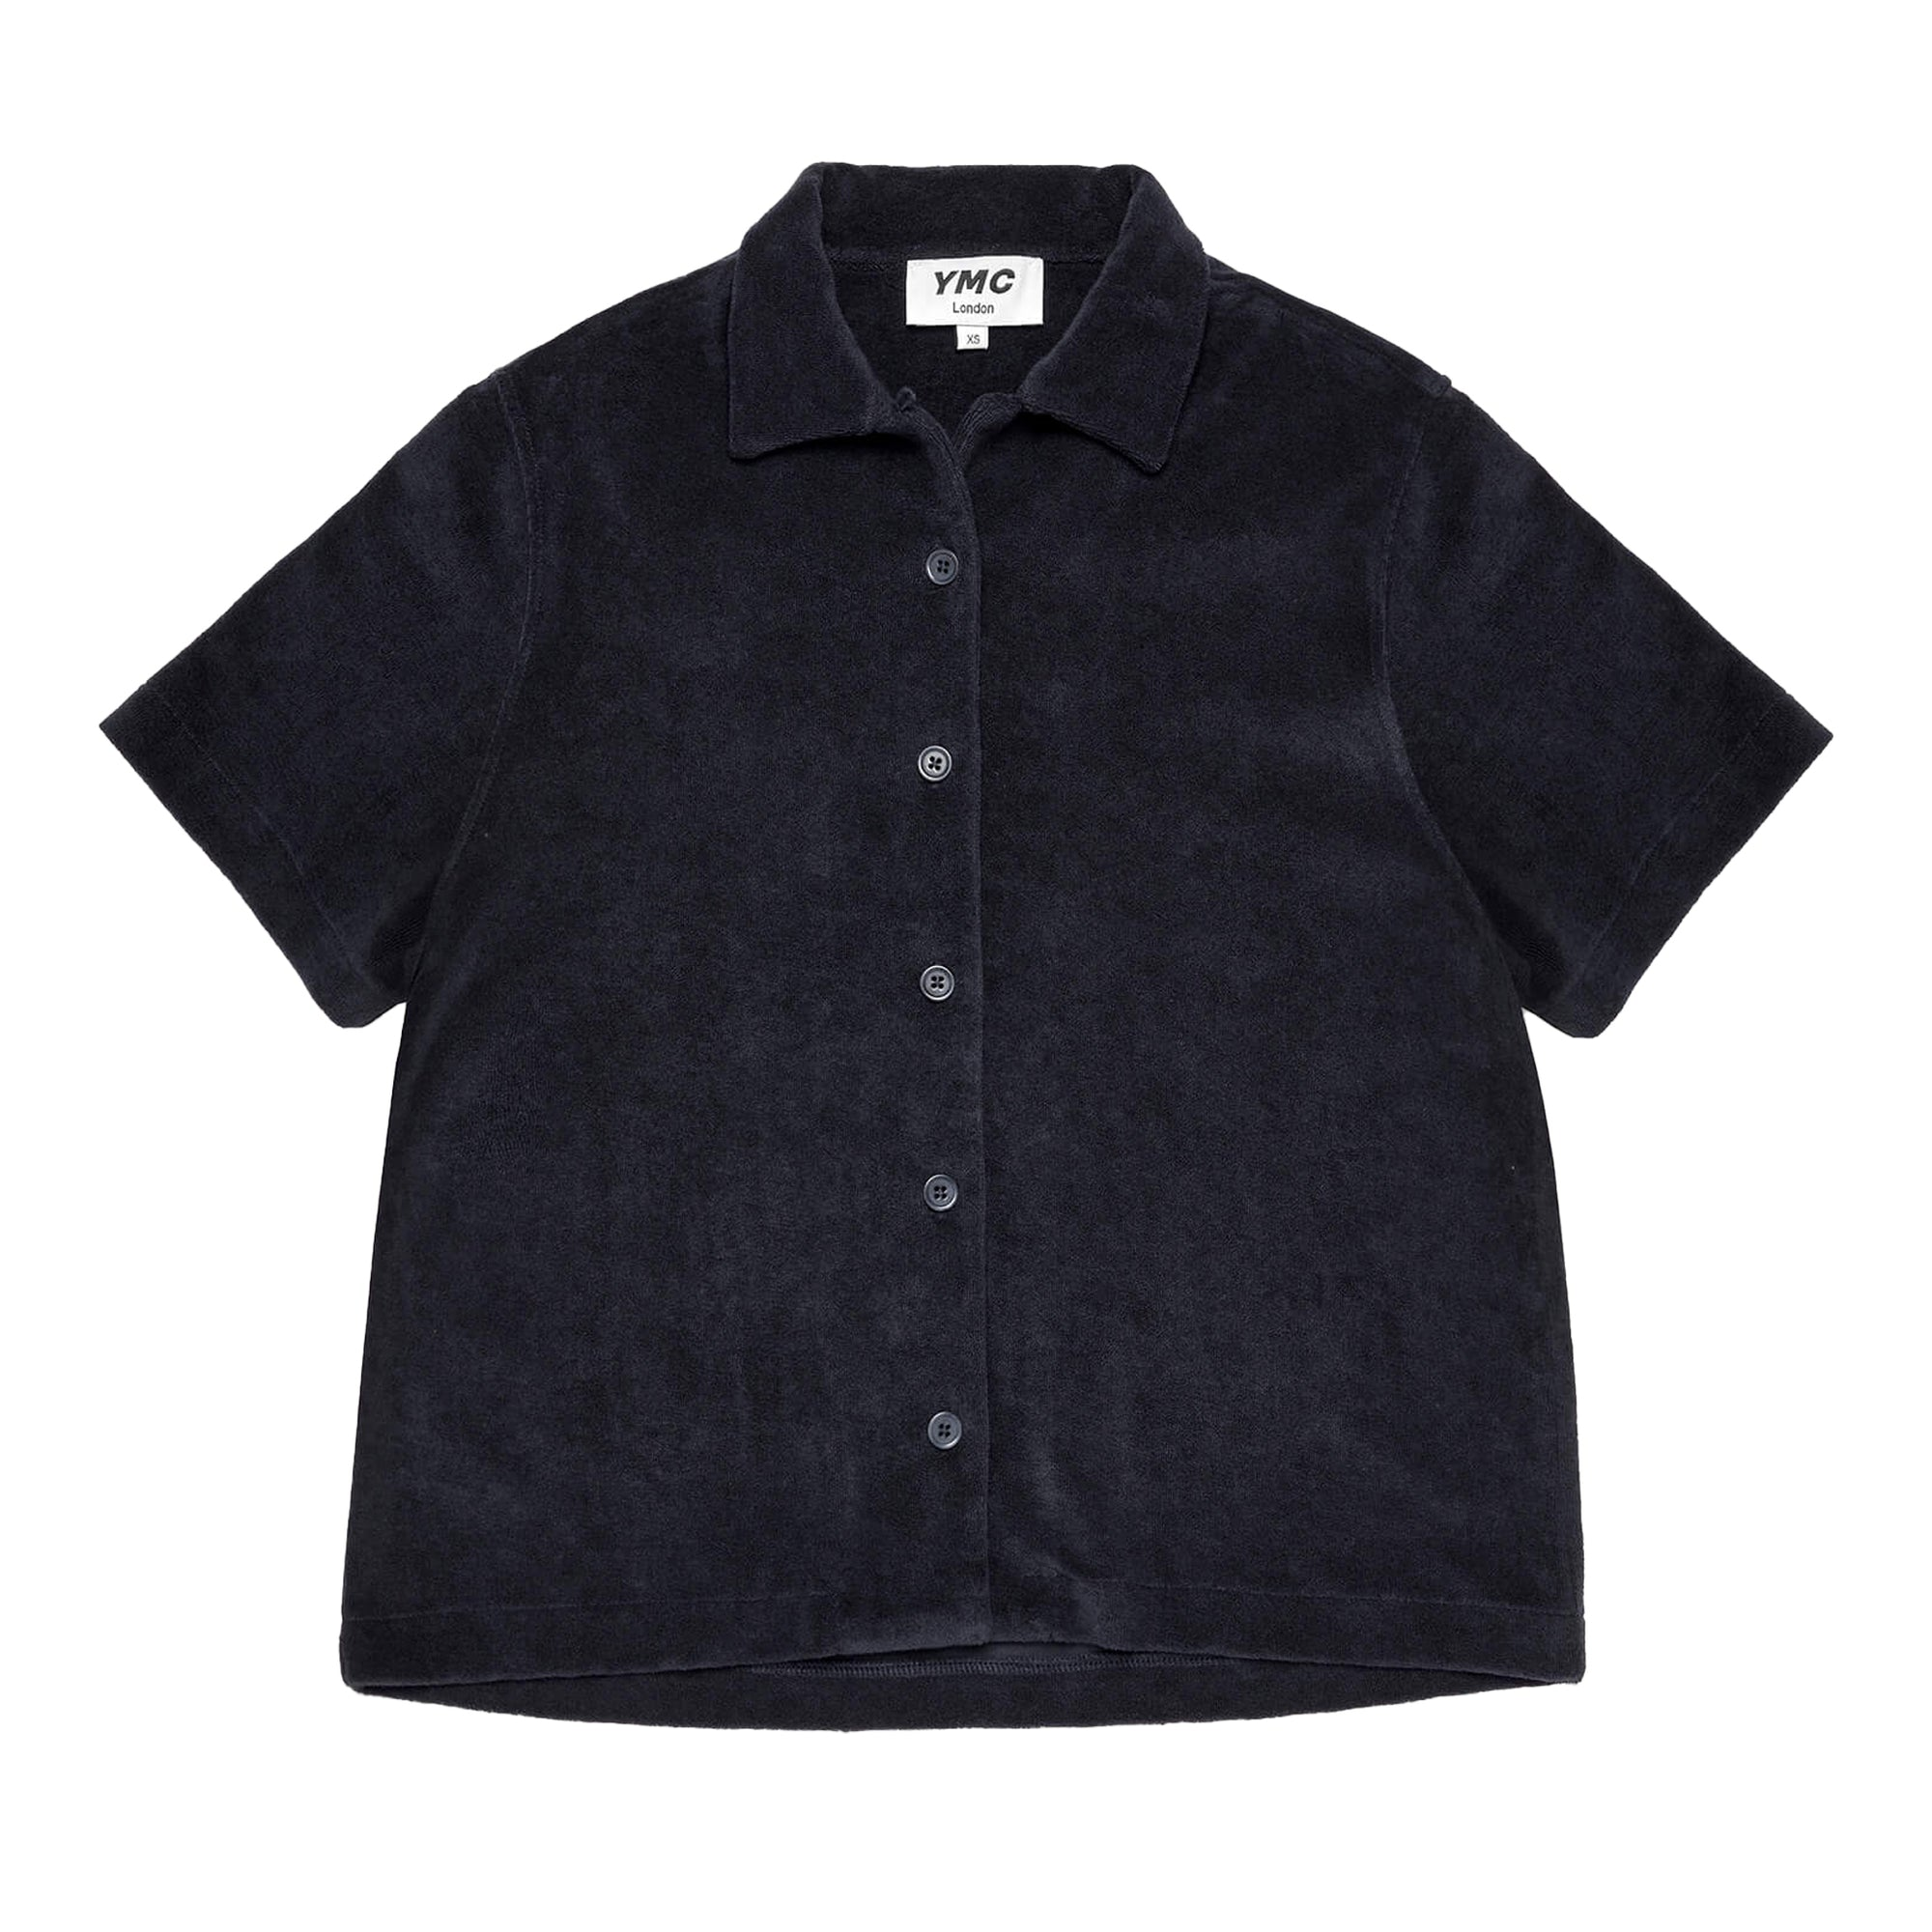 YMC Womens Vegas Shirt: Navy - The Union Project